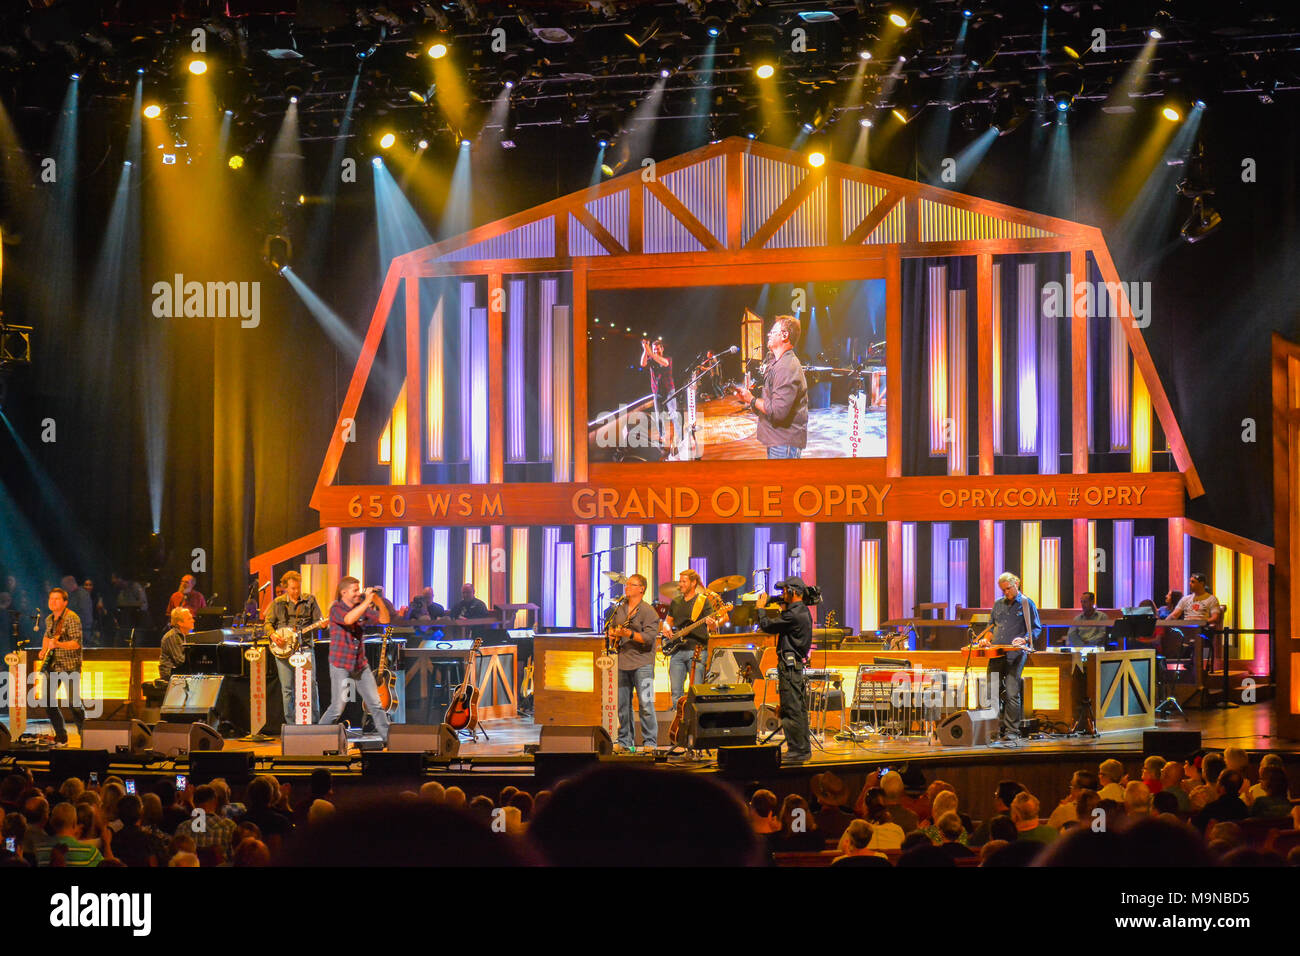 grand ole opry nashville tennessee stock photos & grand ole opry